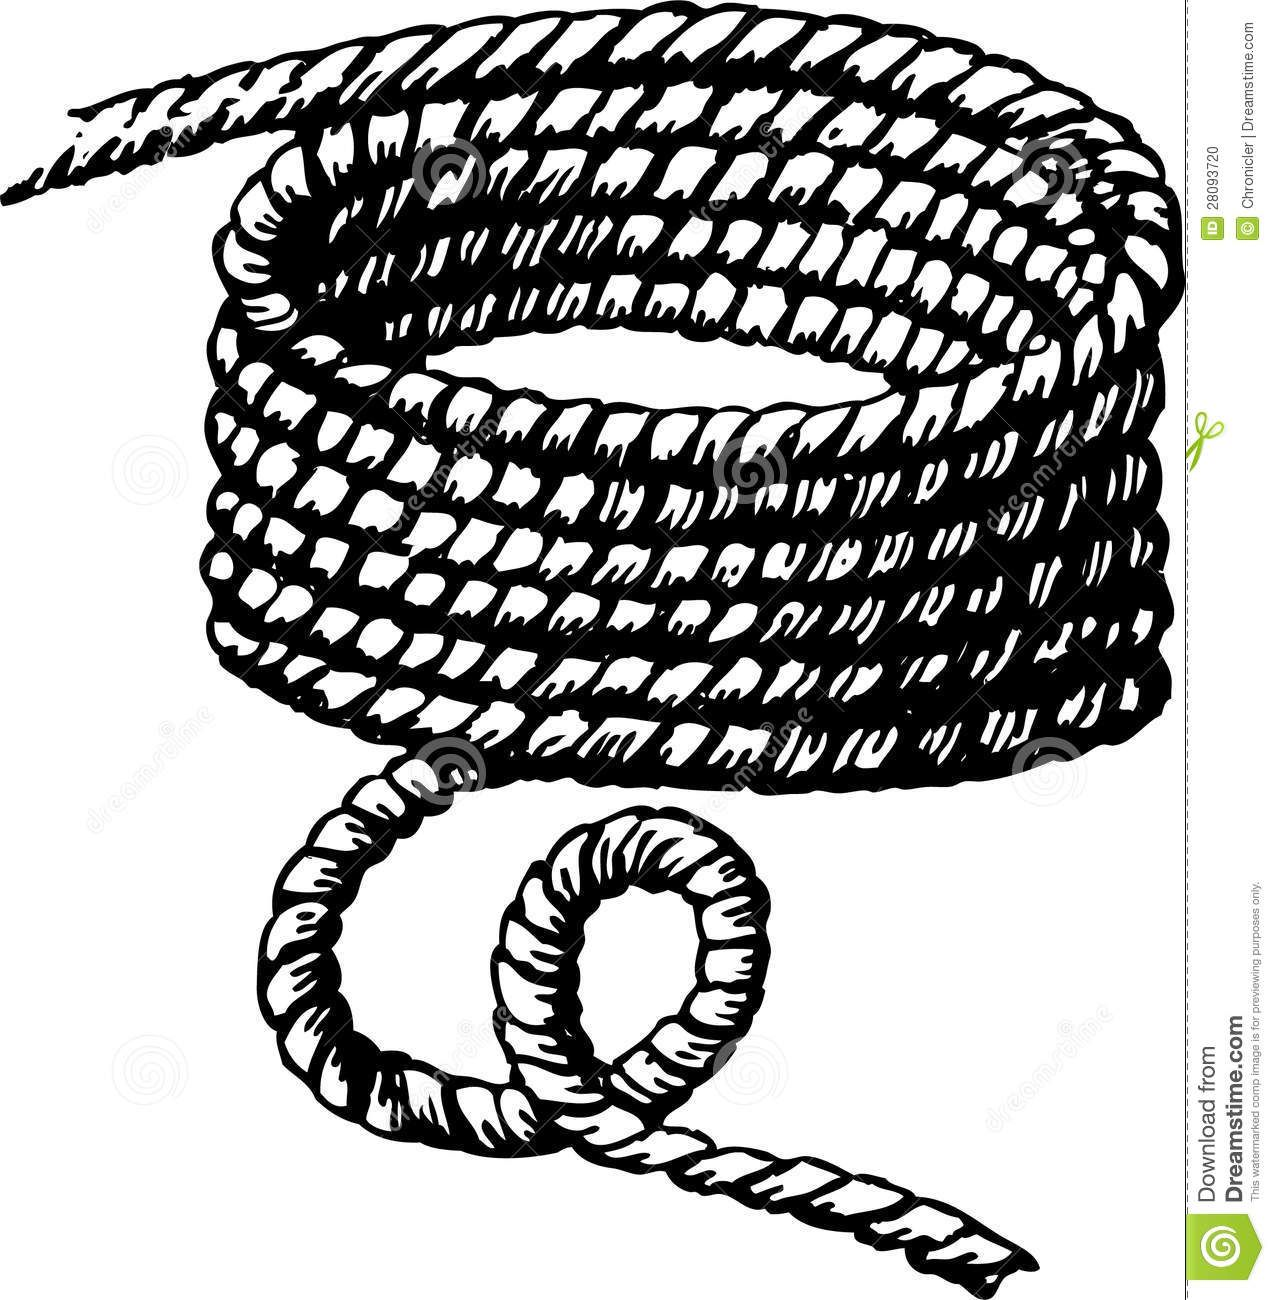 Braided rope drawing